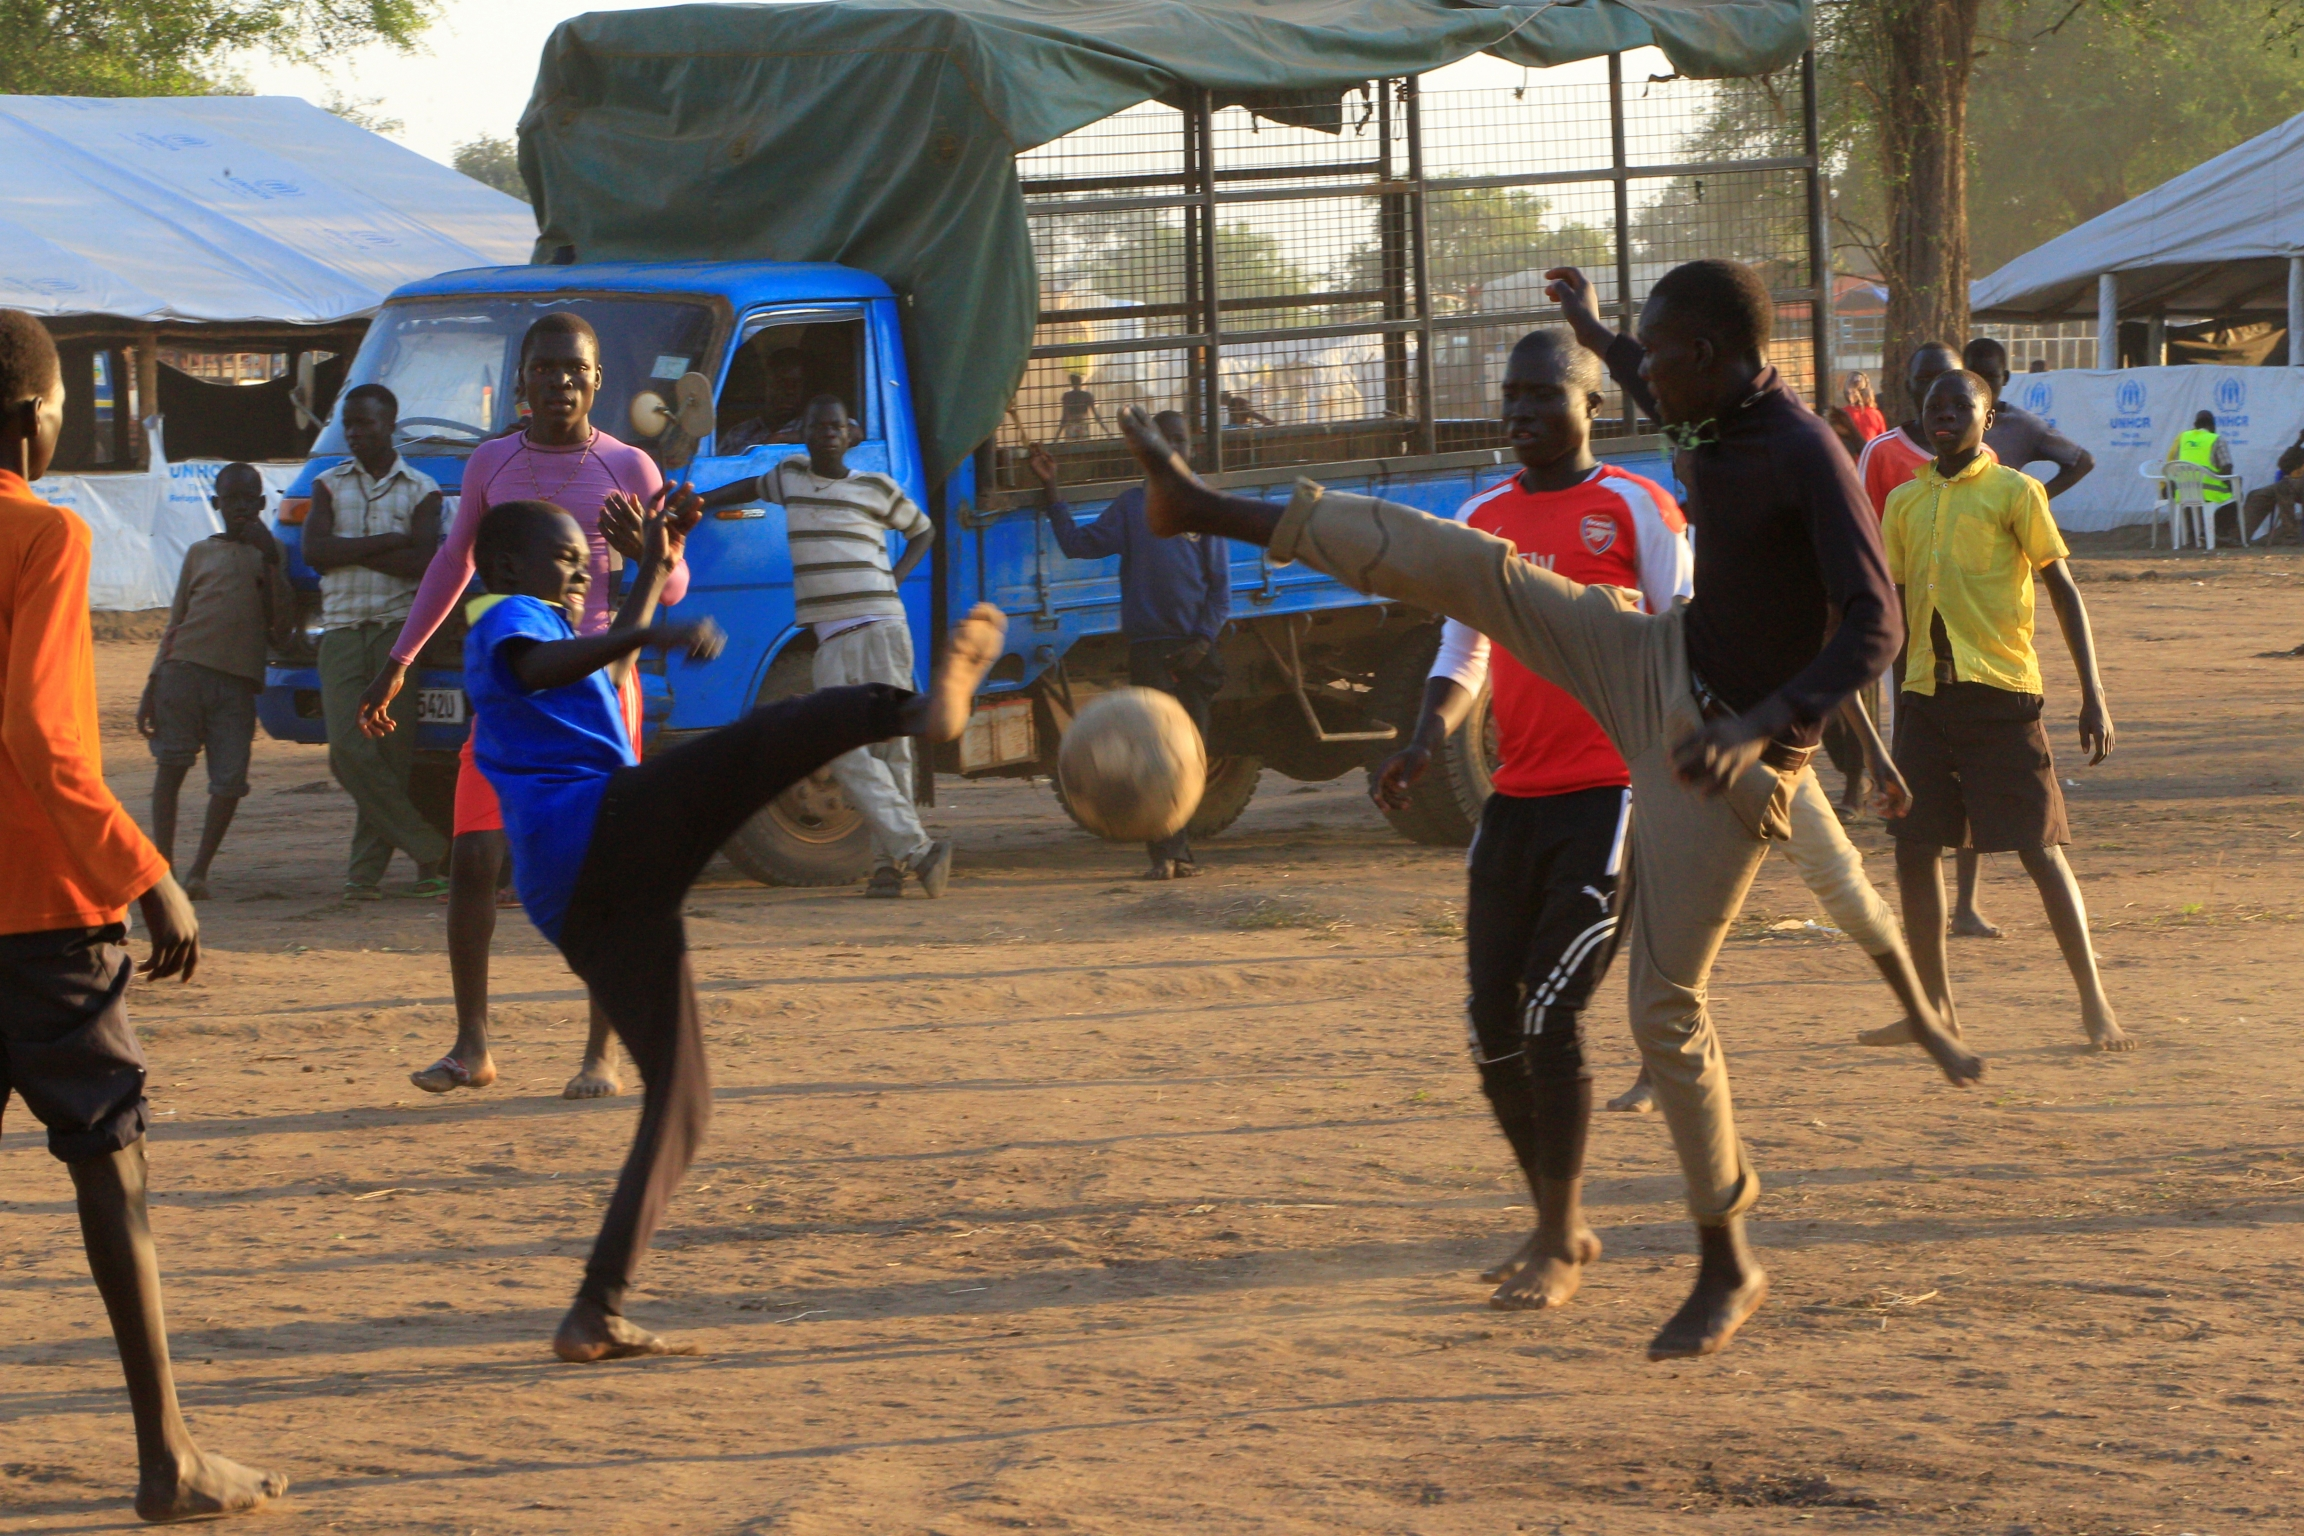 youth play soccer near trucks at refugee camp